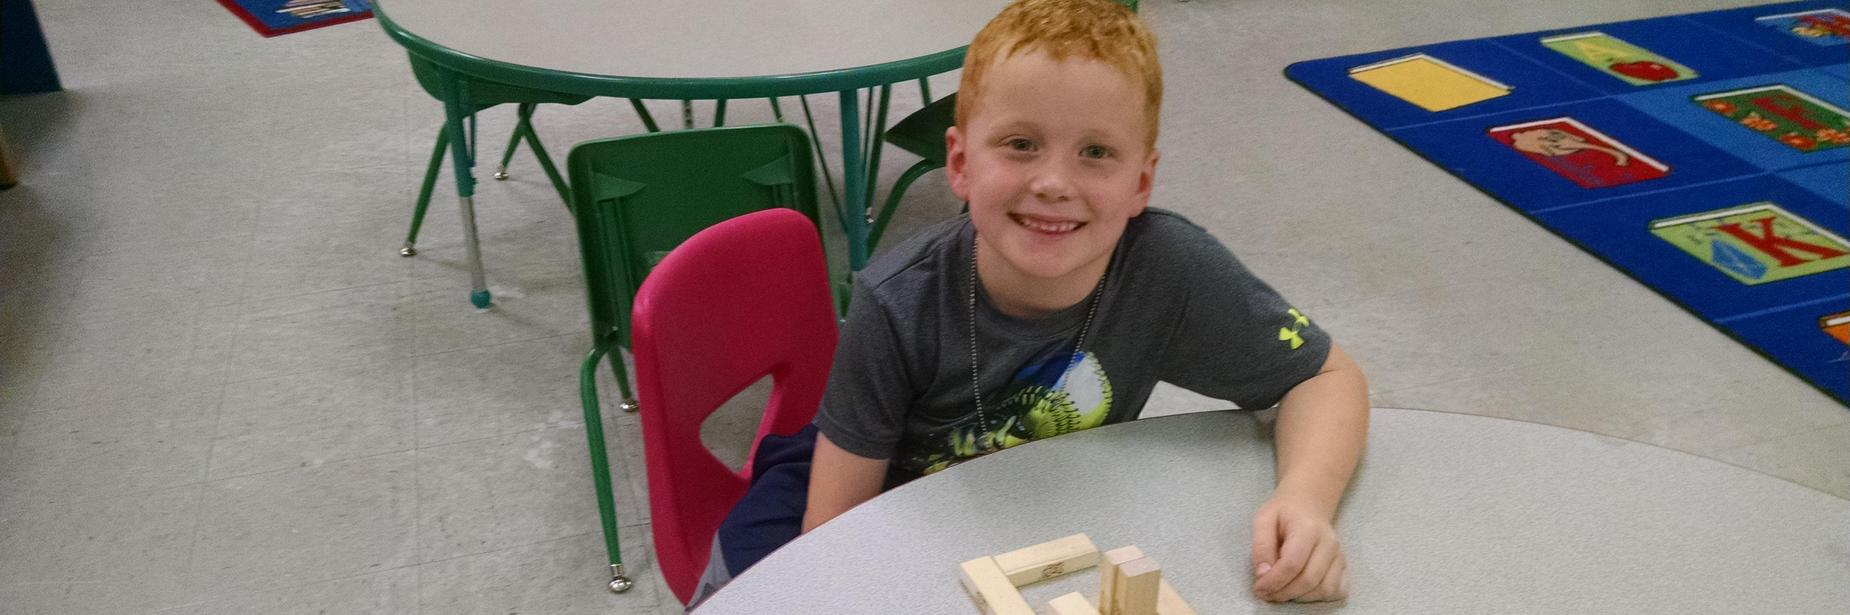 Boy with jenga cubes